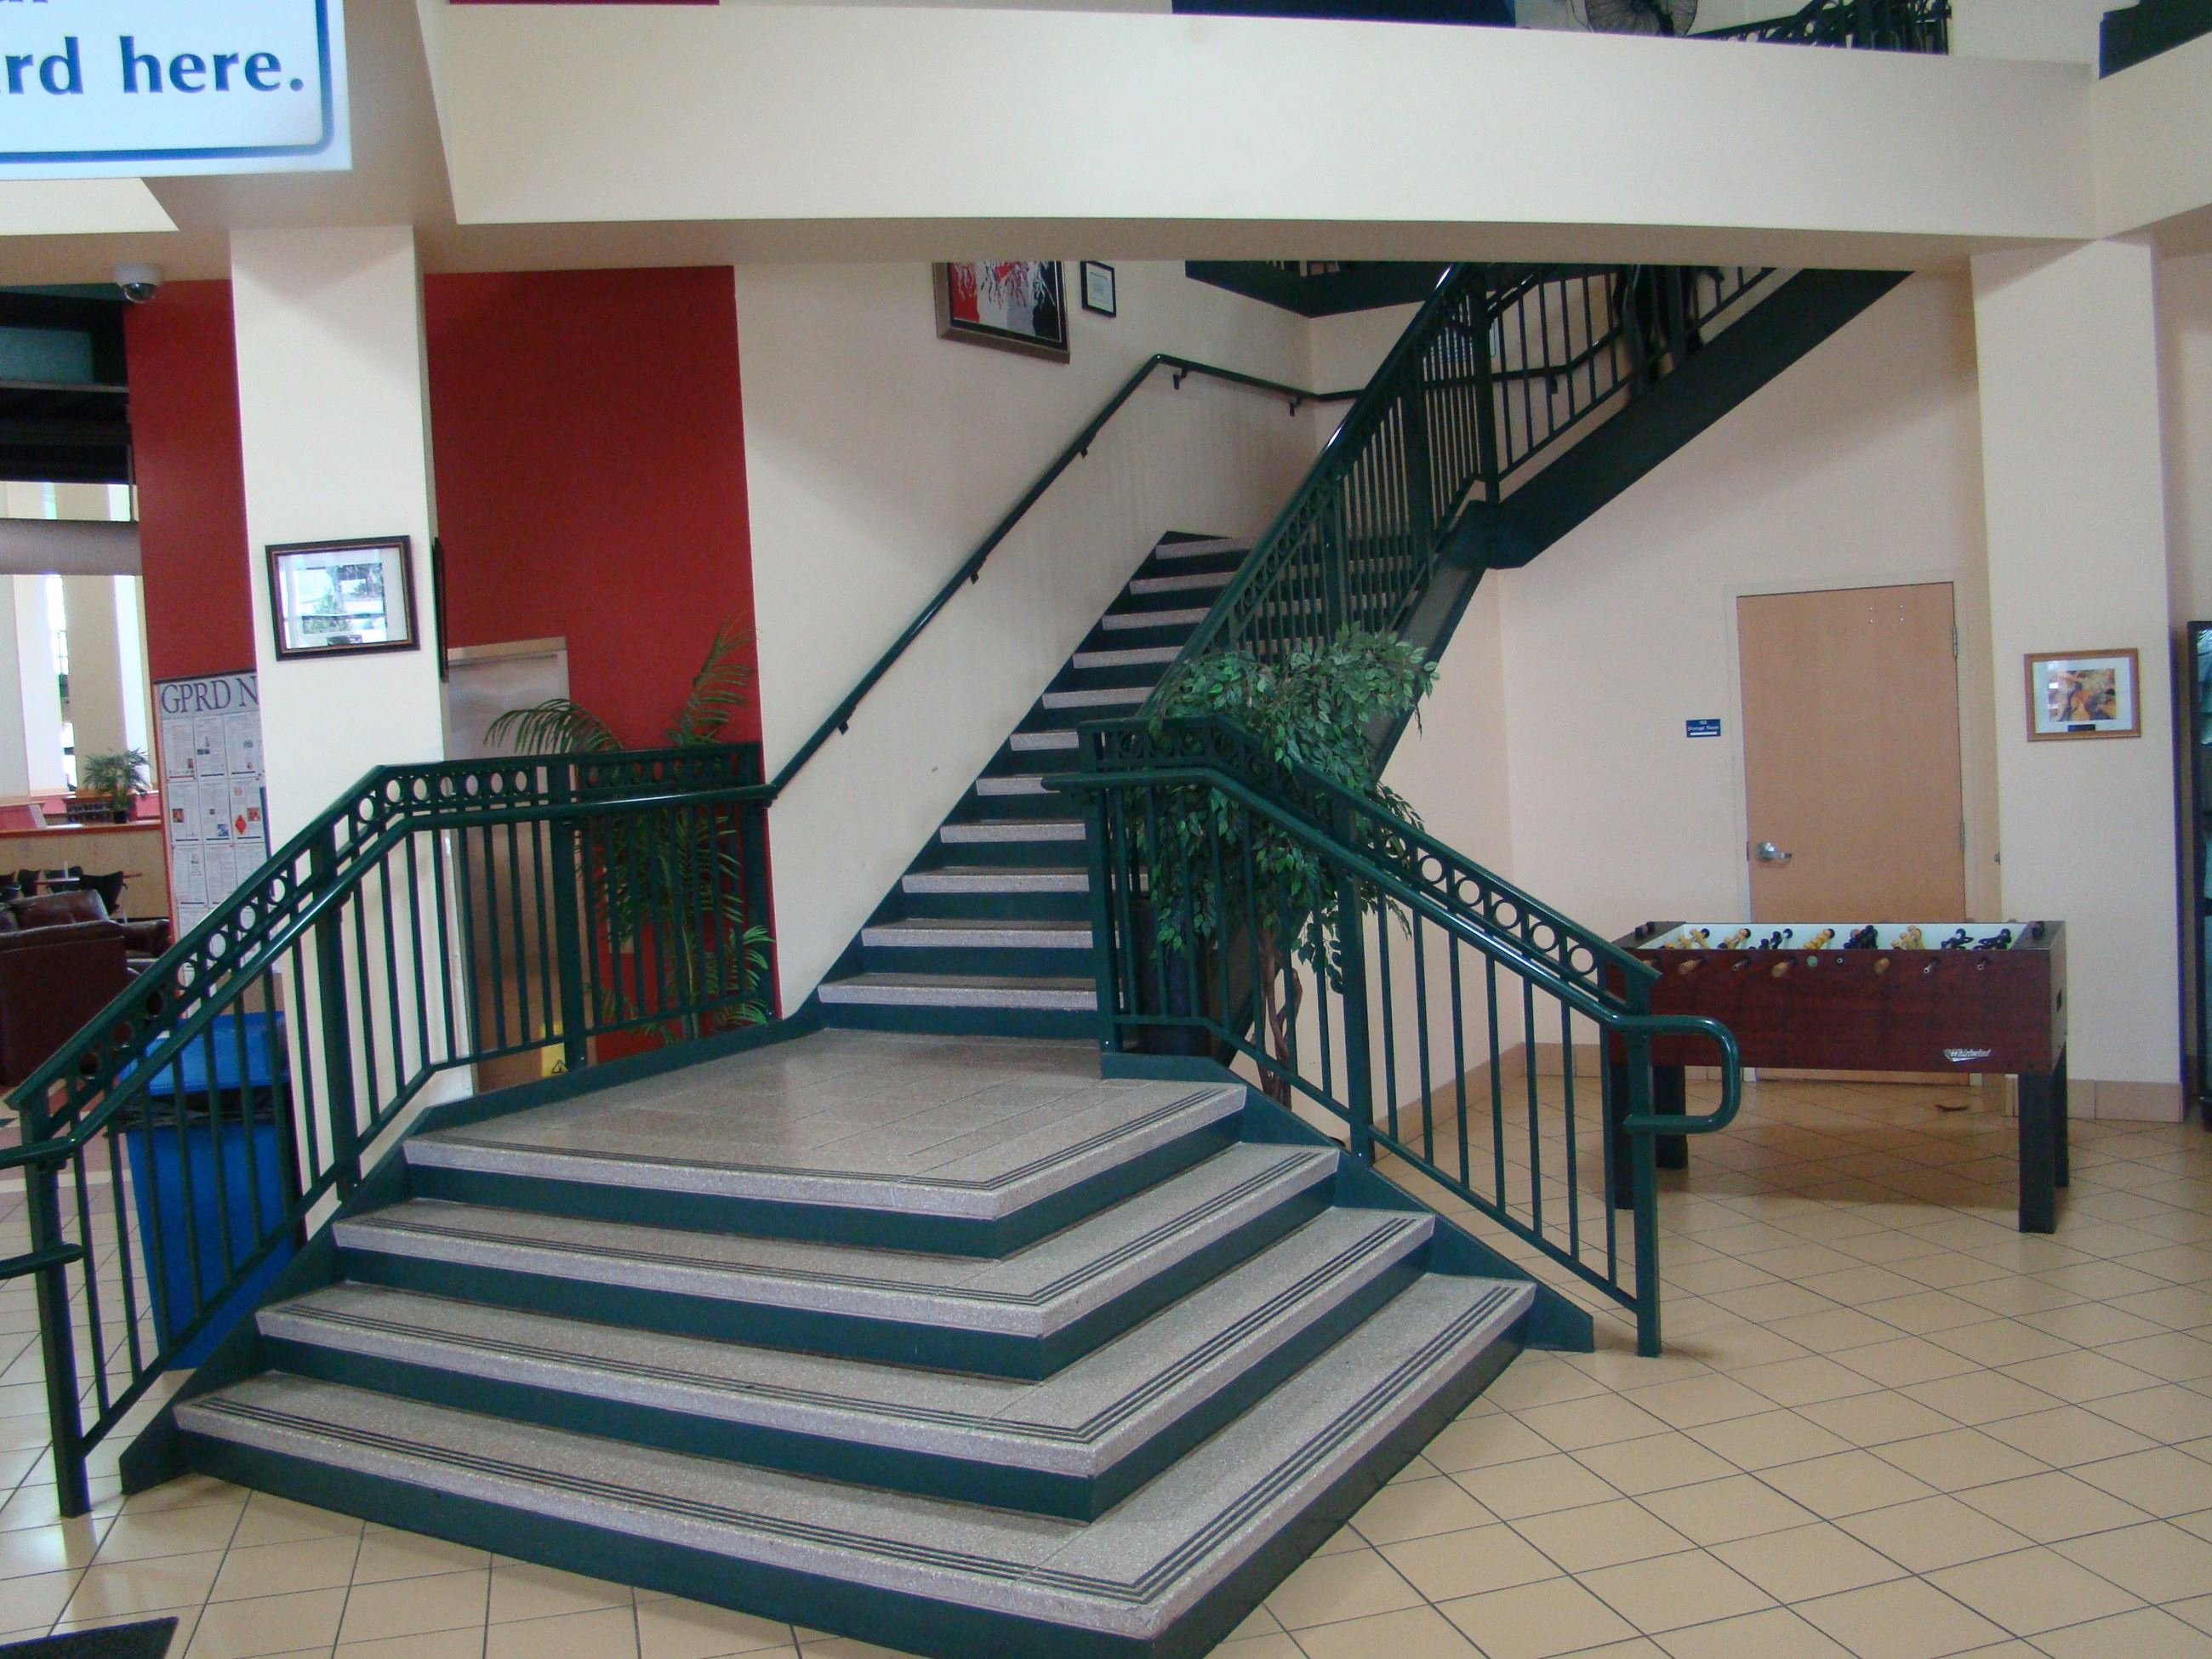 A staircase leading to the second floor of the Recreation Center.